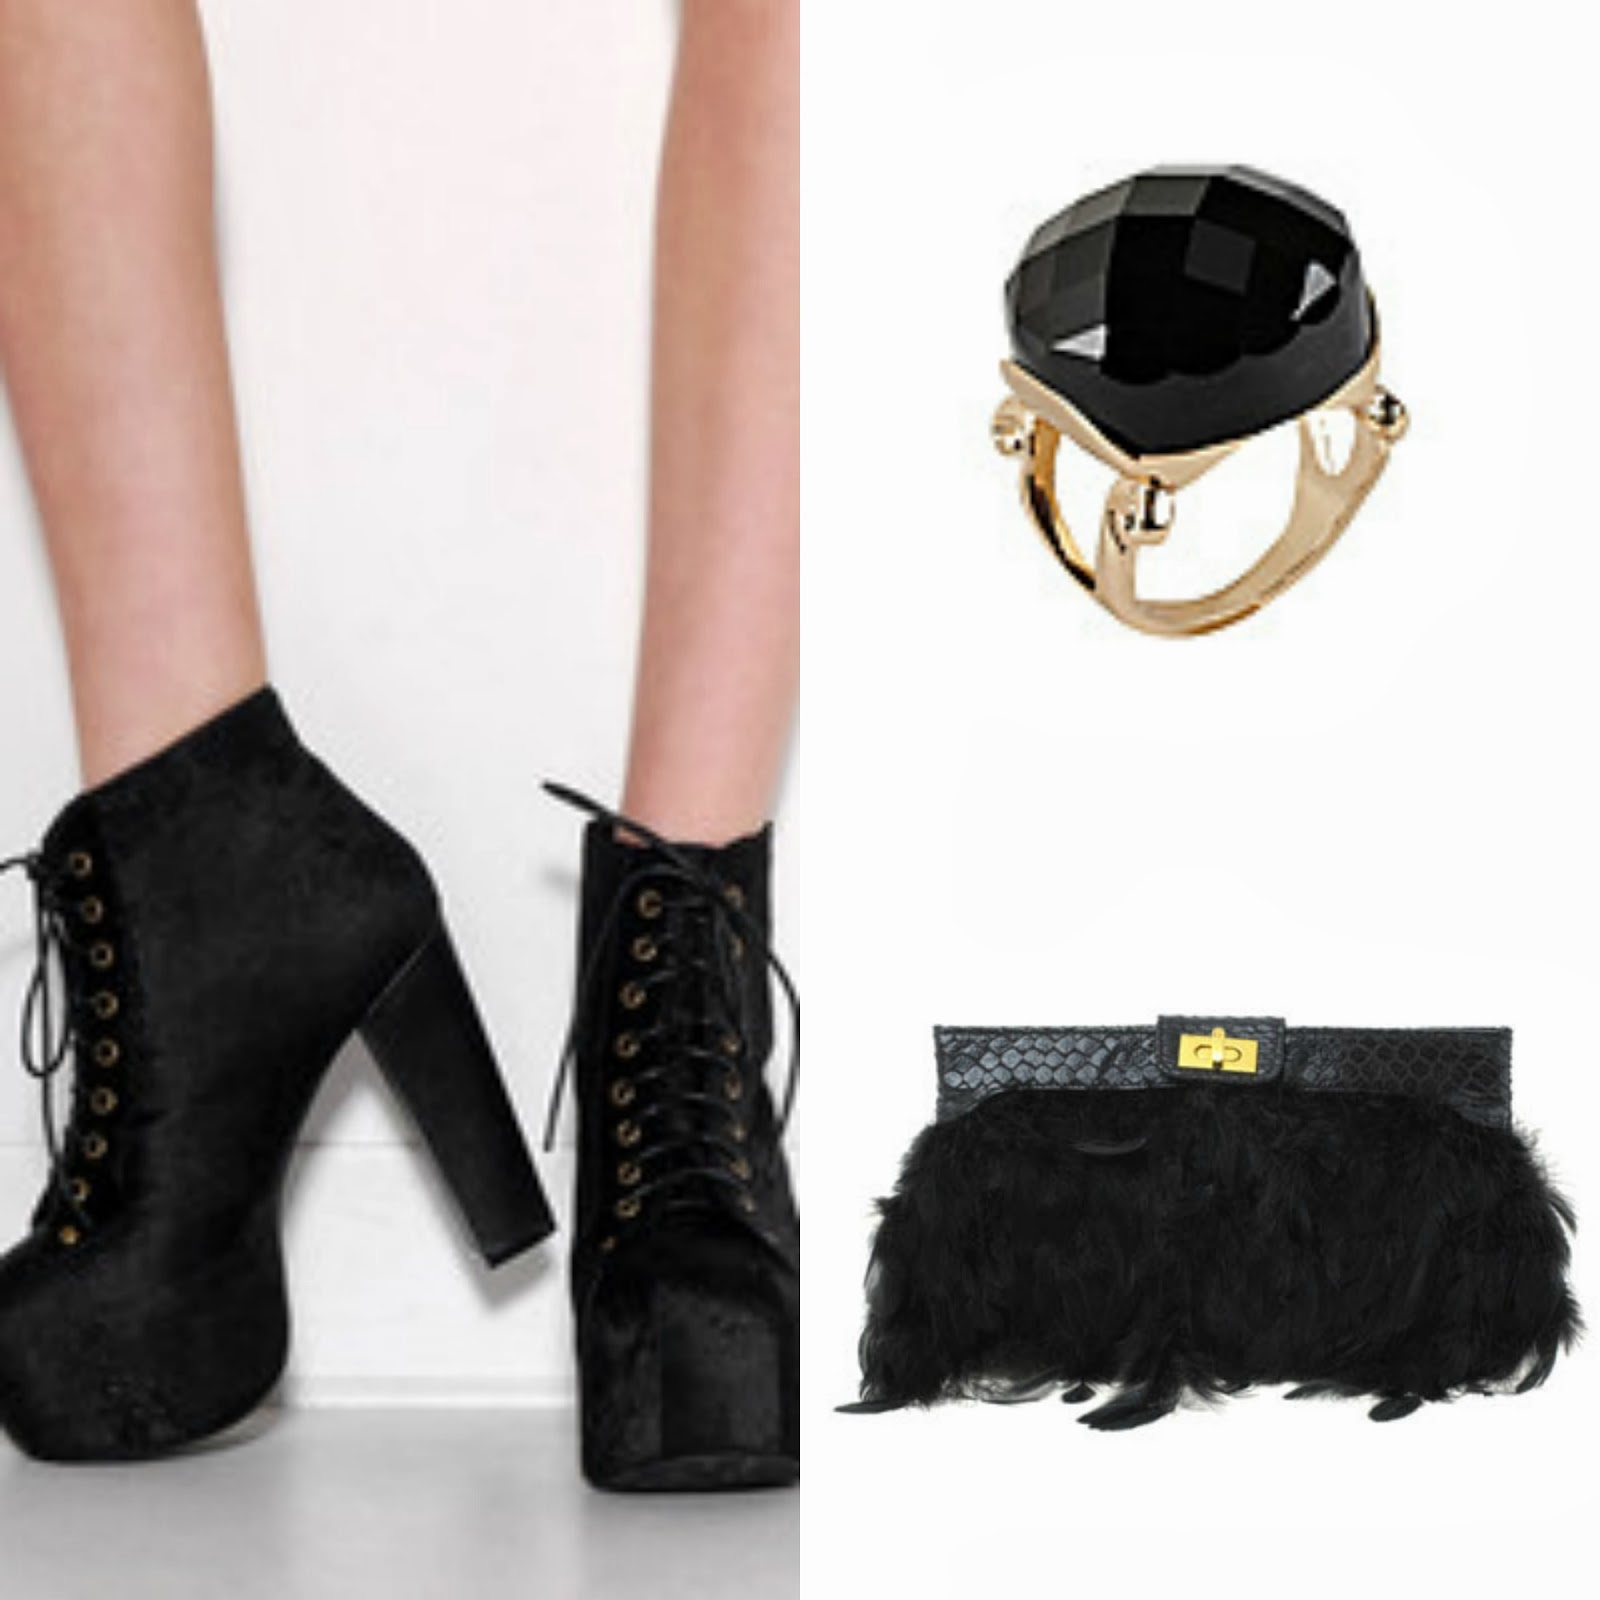 b0980c7583b5 I paired this with the classic Jeffrey Campbell best seller